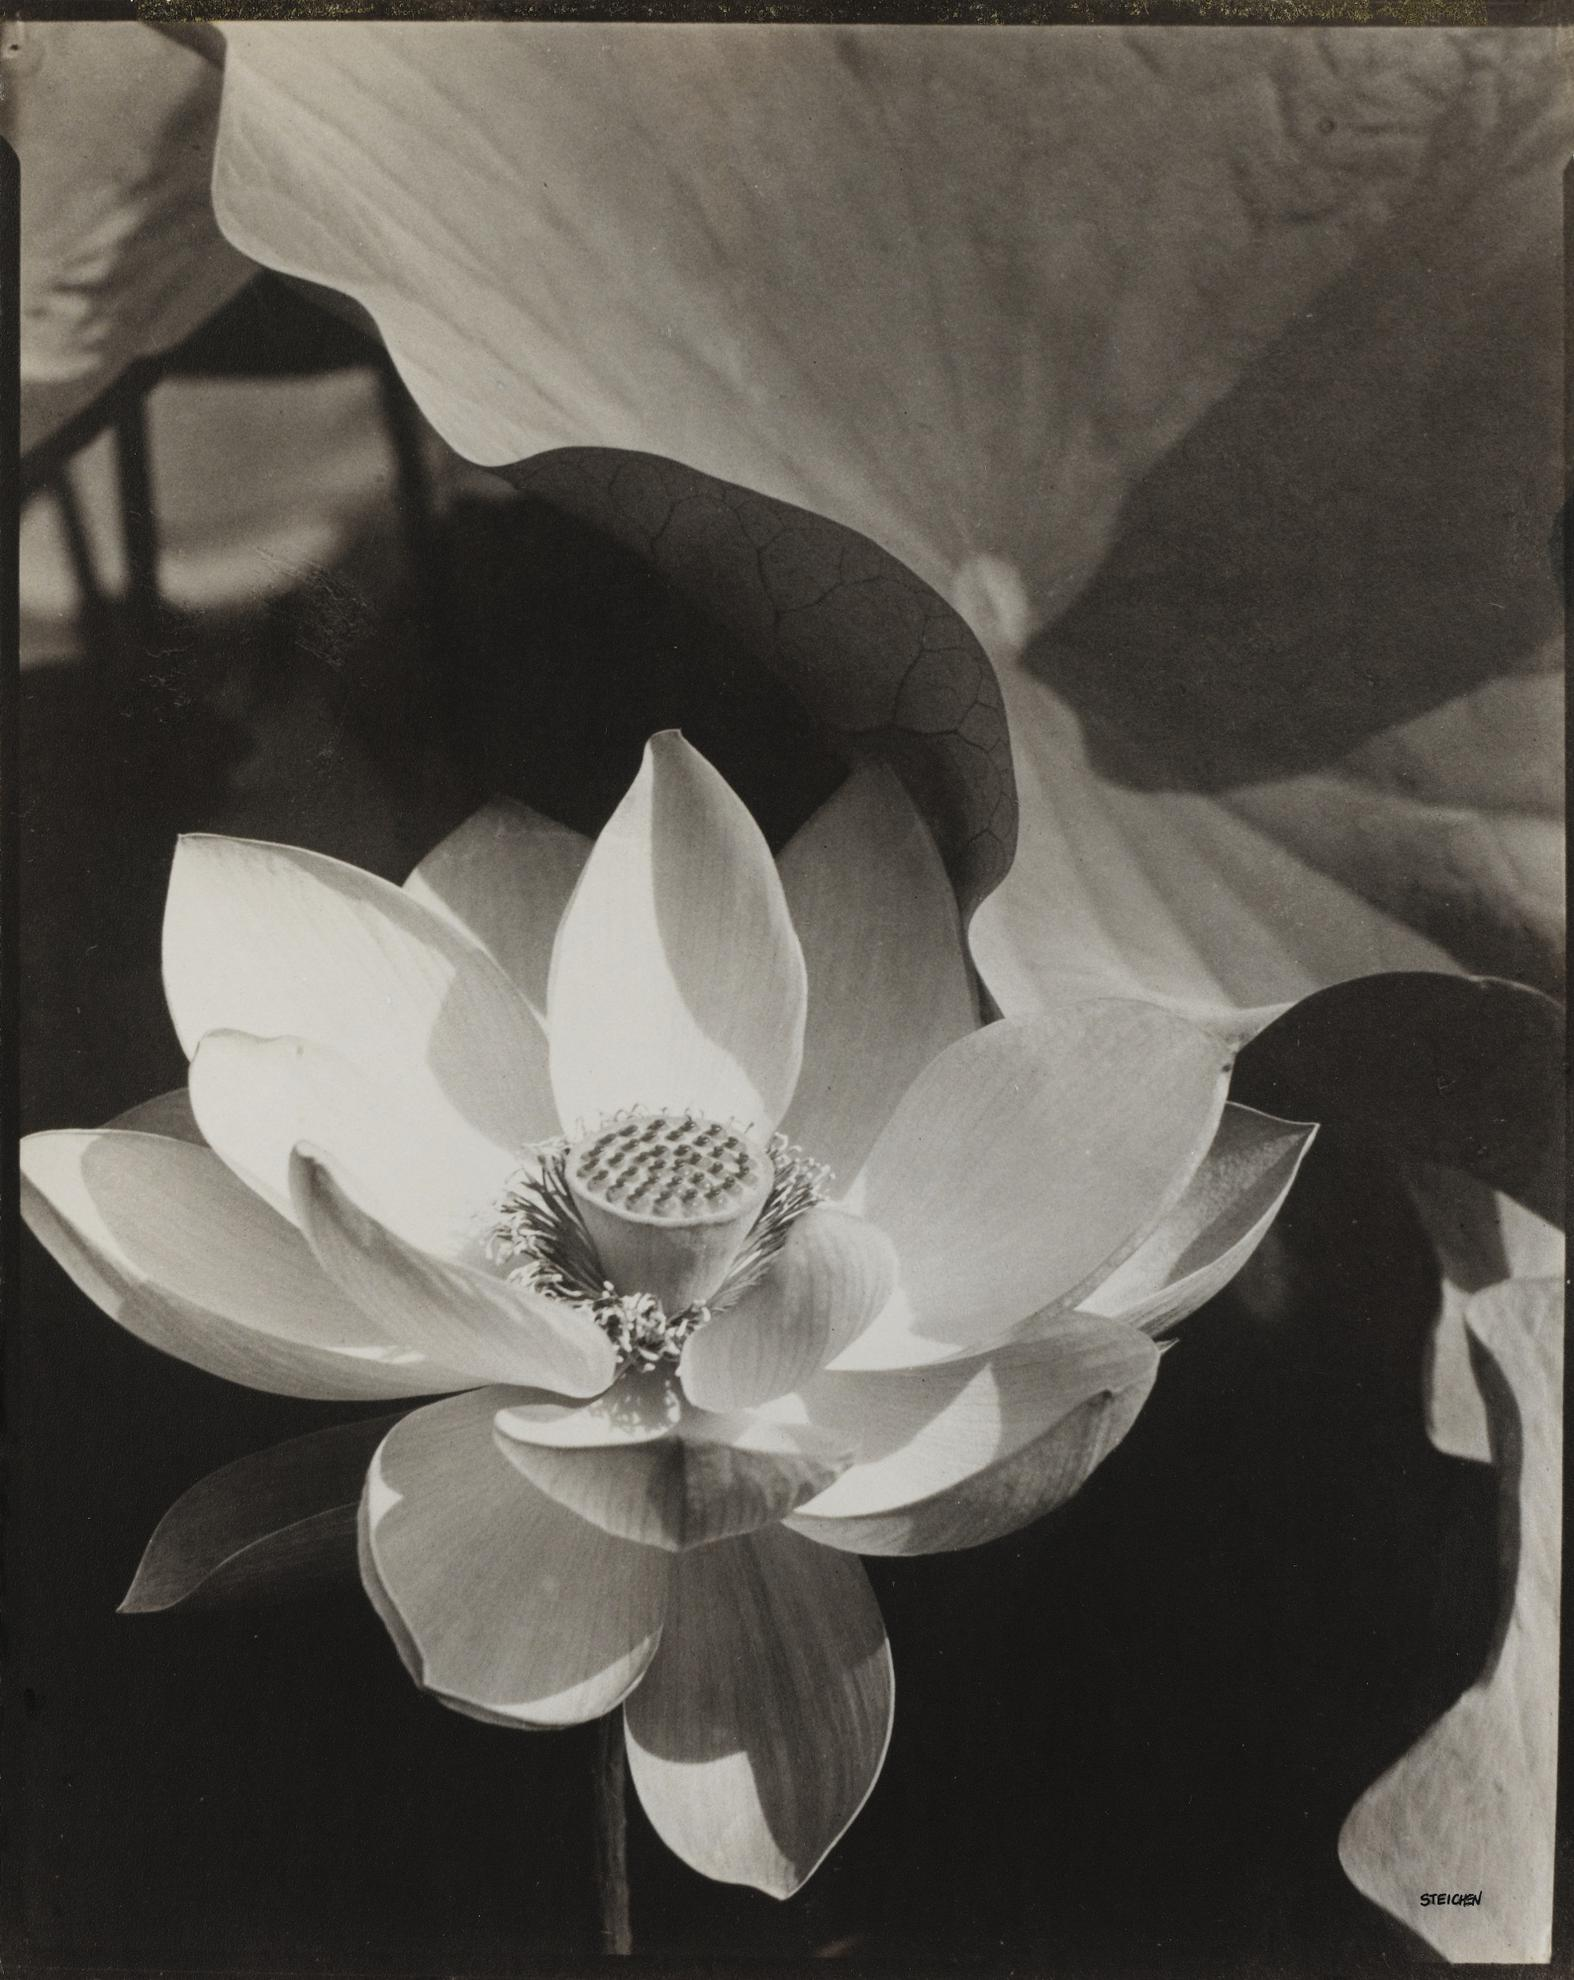 Edward Steichen 1879 - 1973 - Lotus, Mount Kisco, New York, 1915-1915